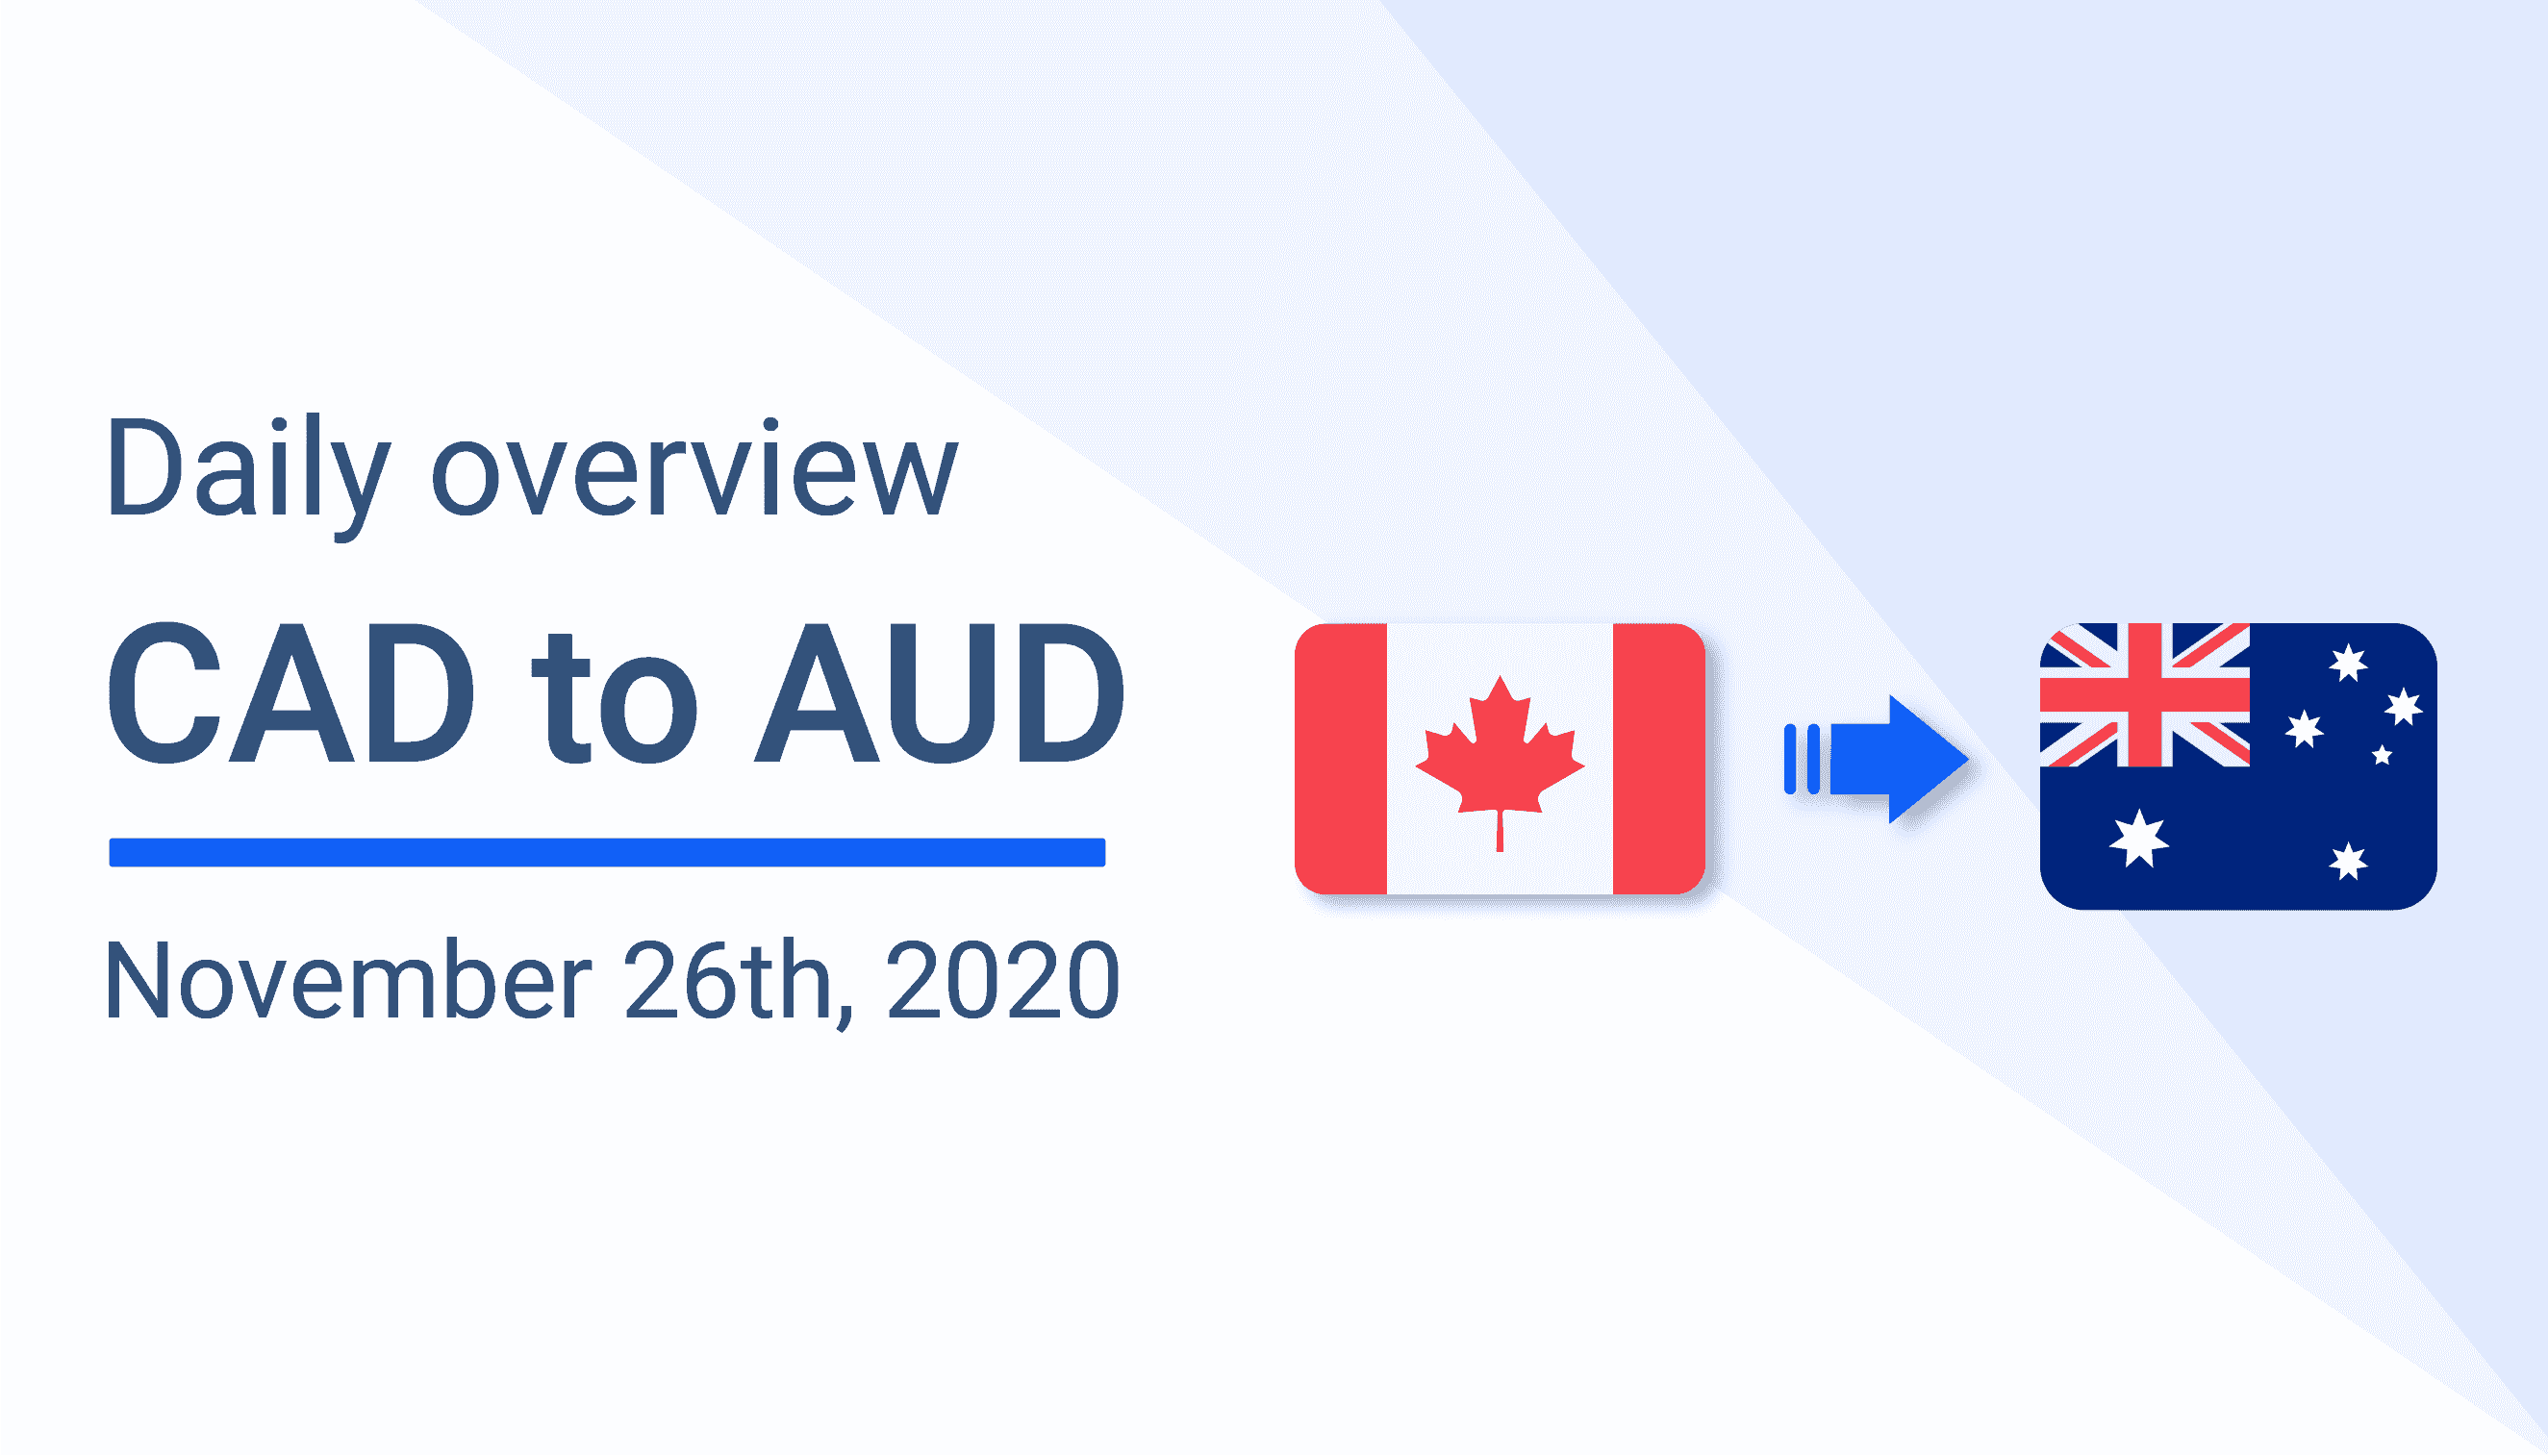 CAD to AUD Daily Overview: November 26th